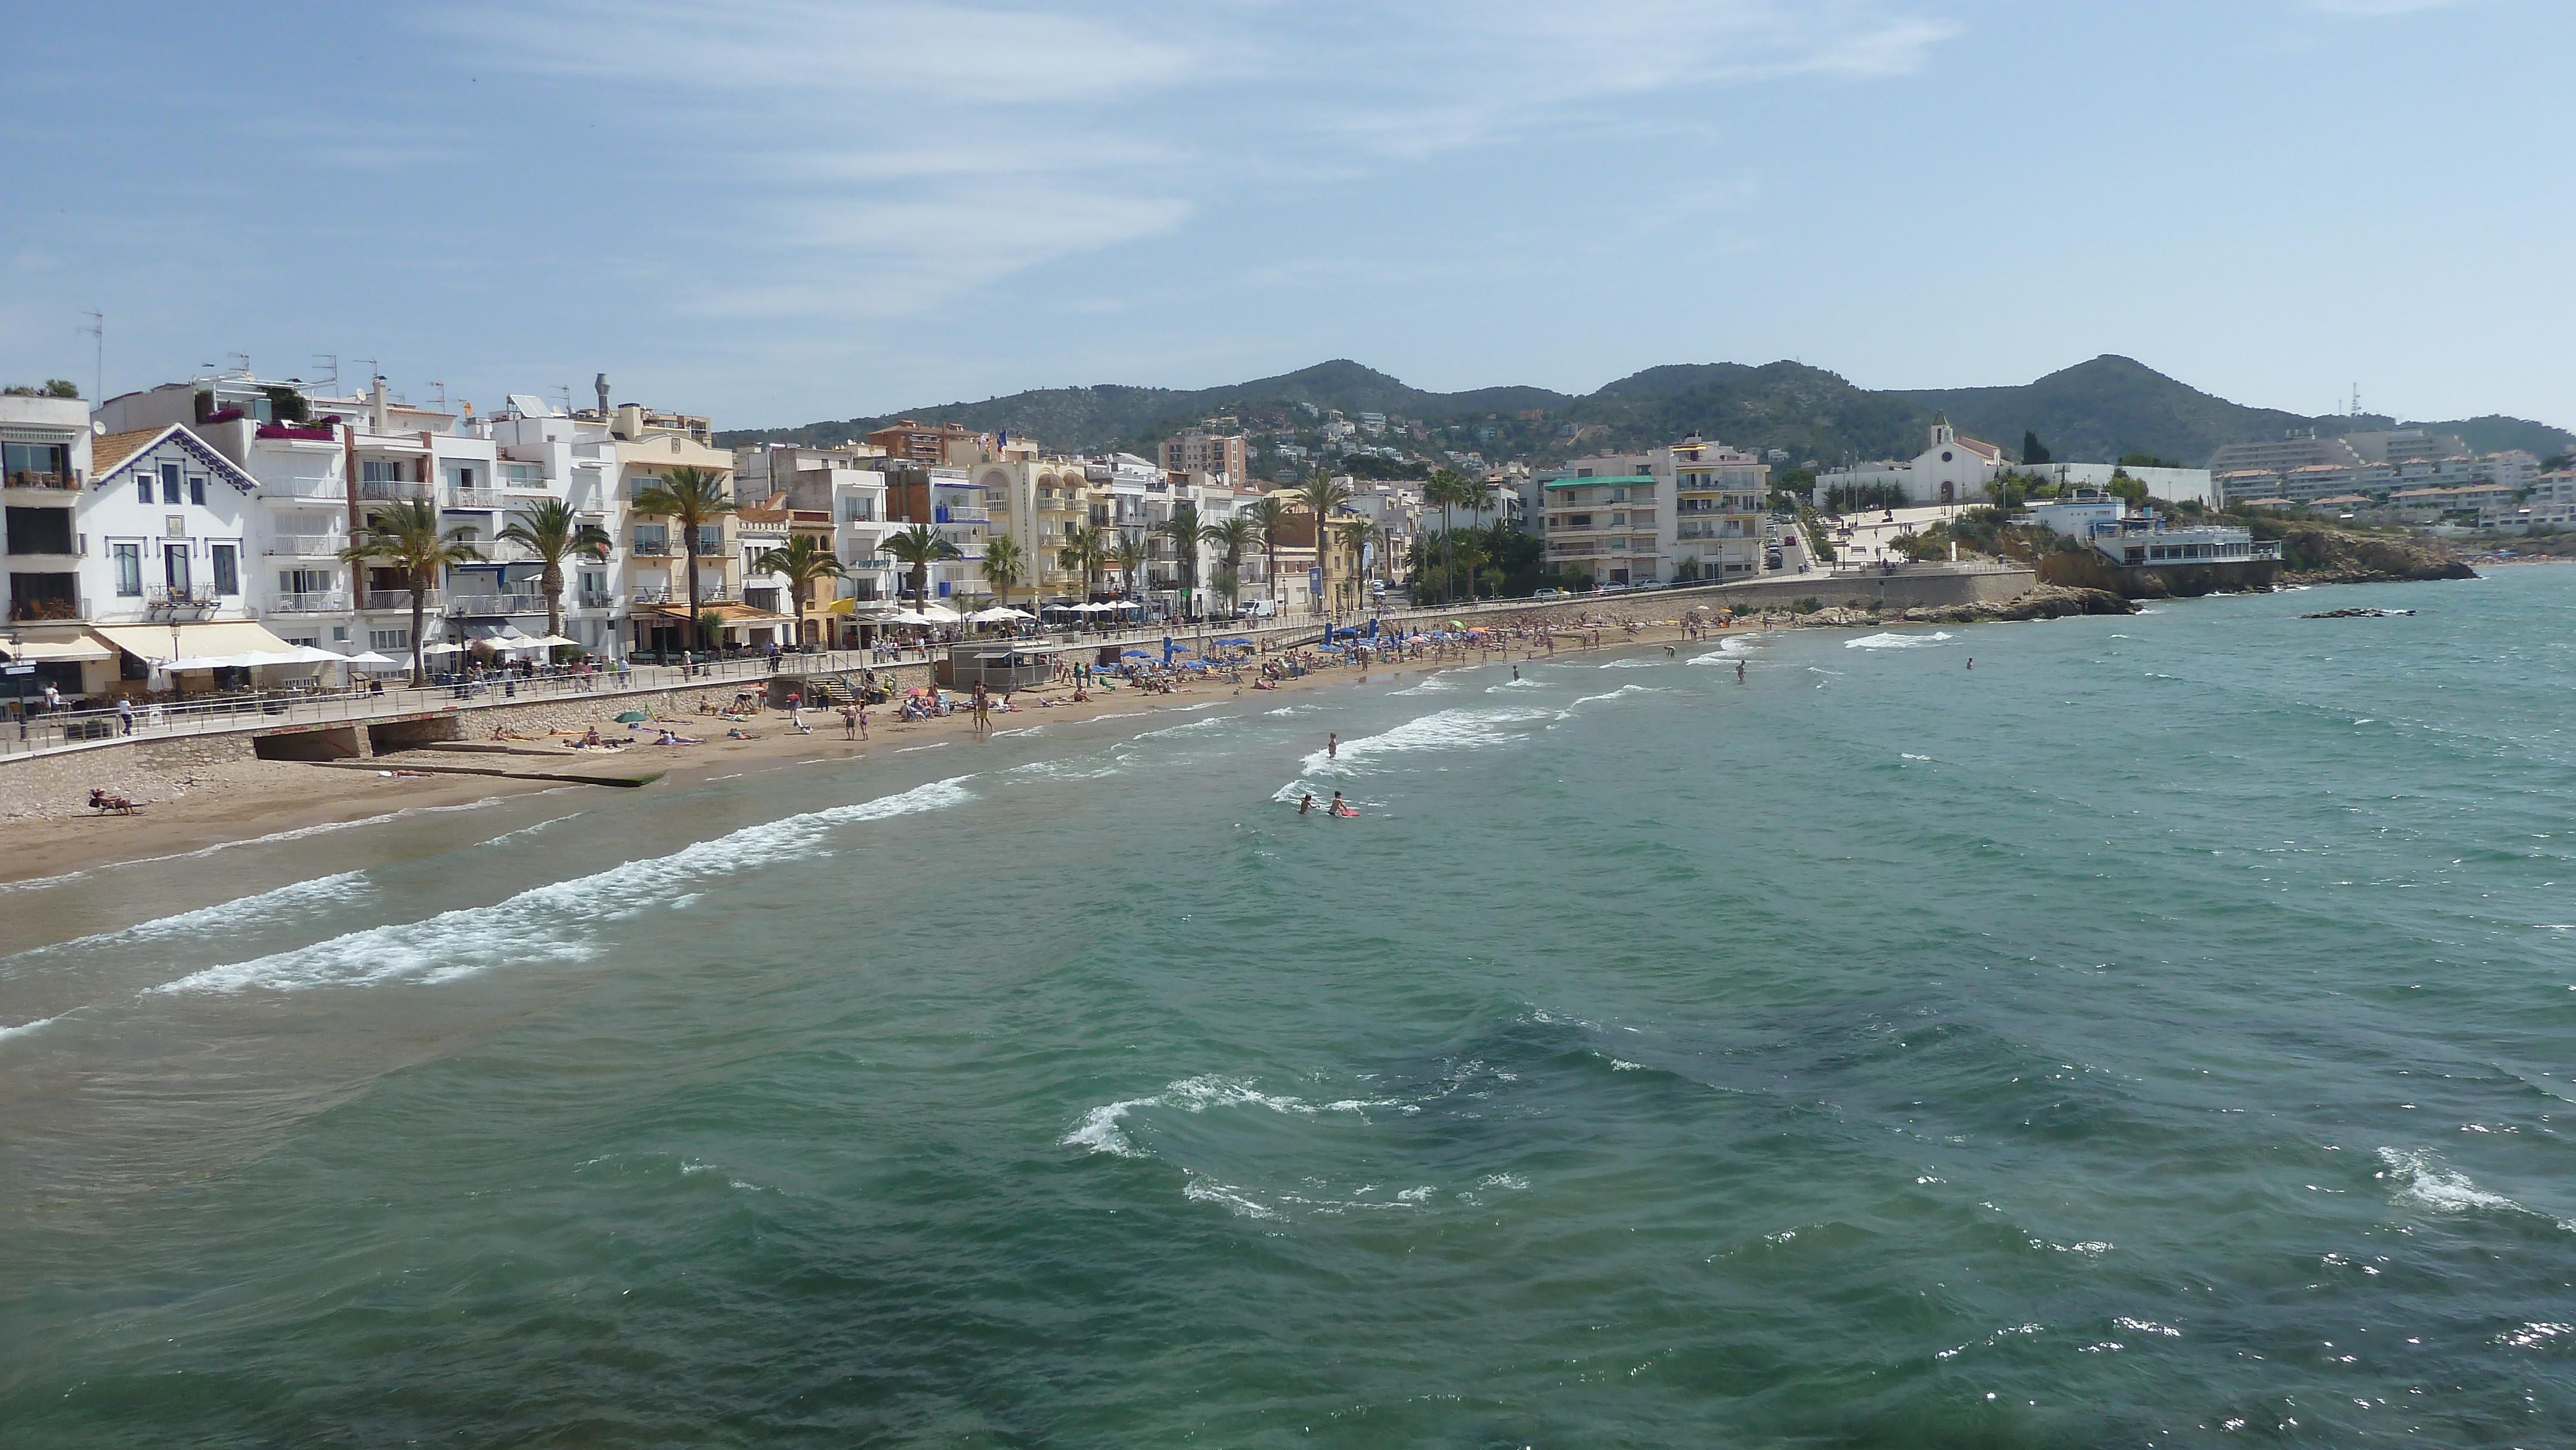 Waterway in Sitges